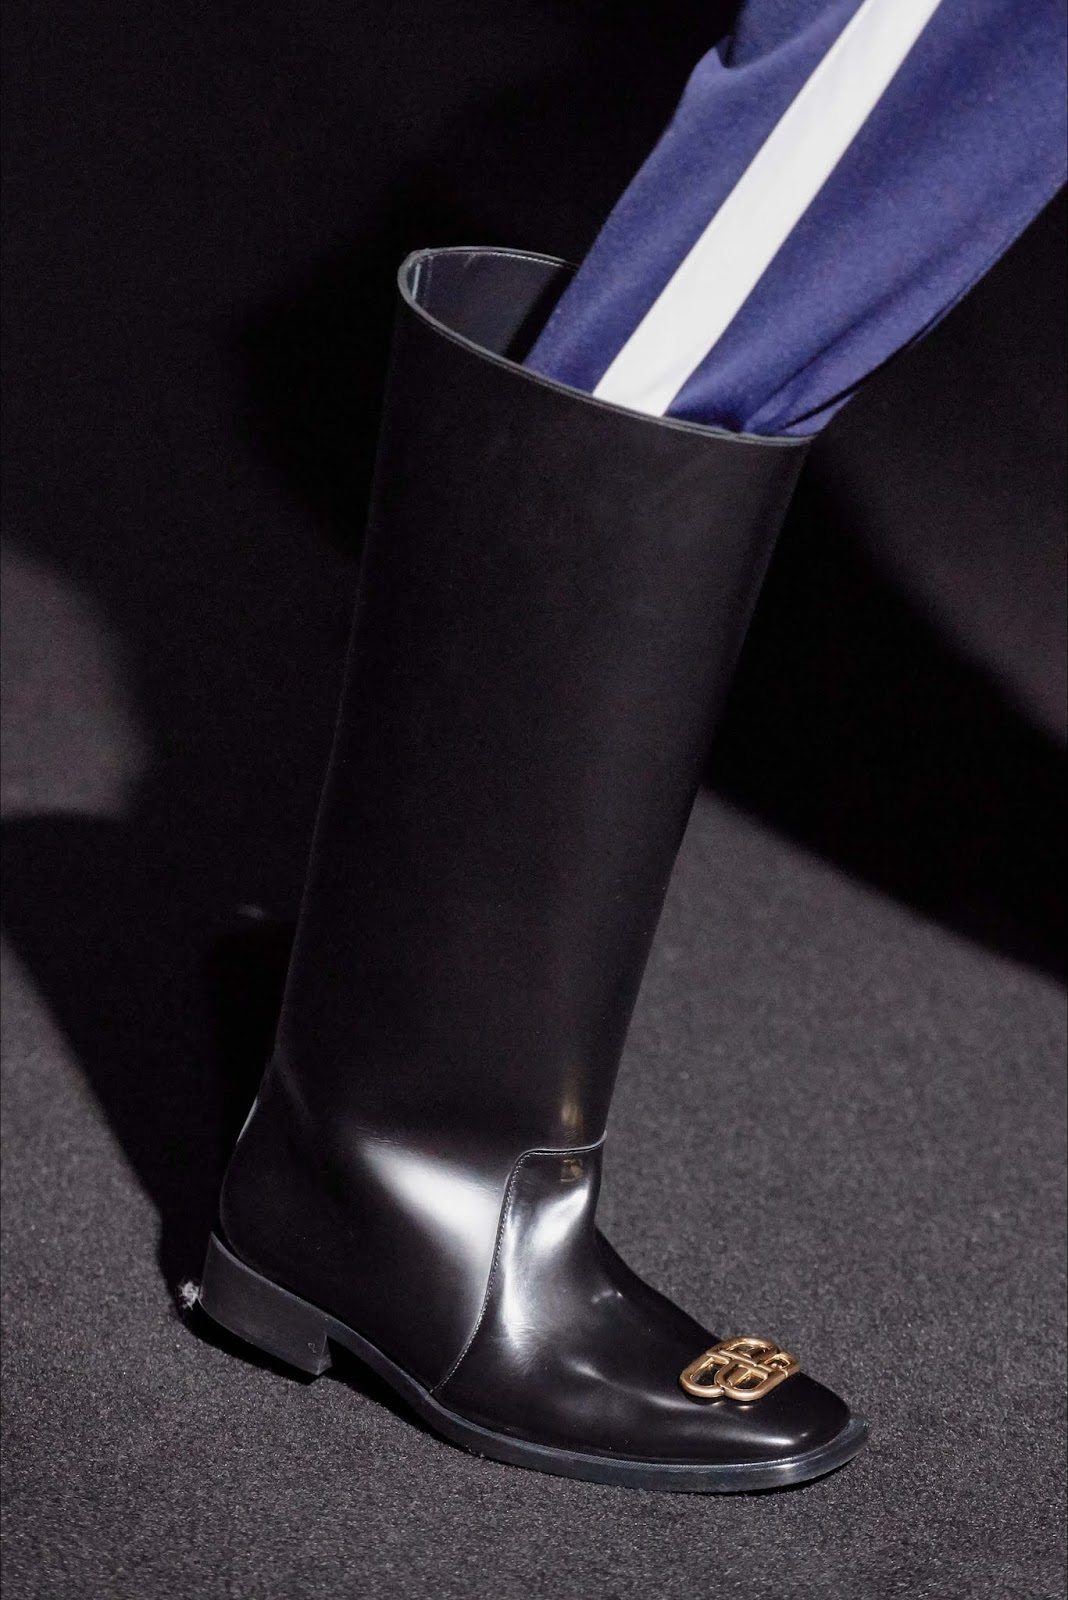 Eniwhere Fashion - Balenciaga Shoes - FW2019